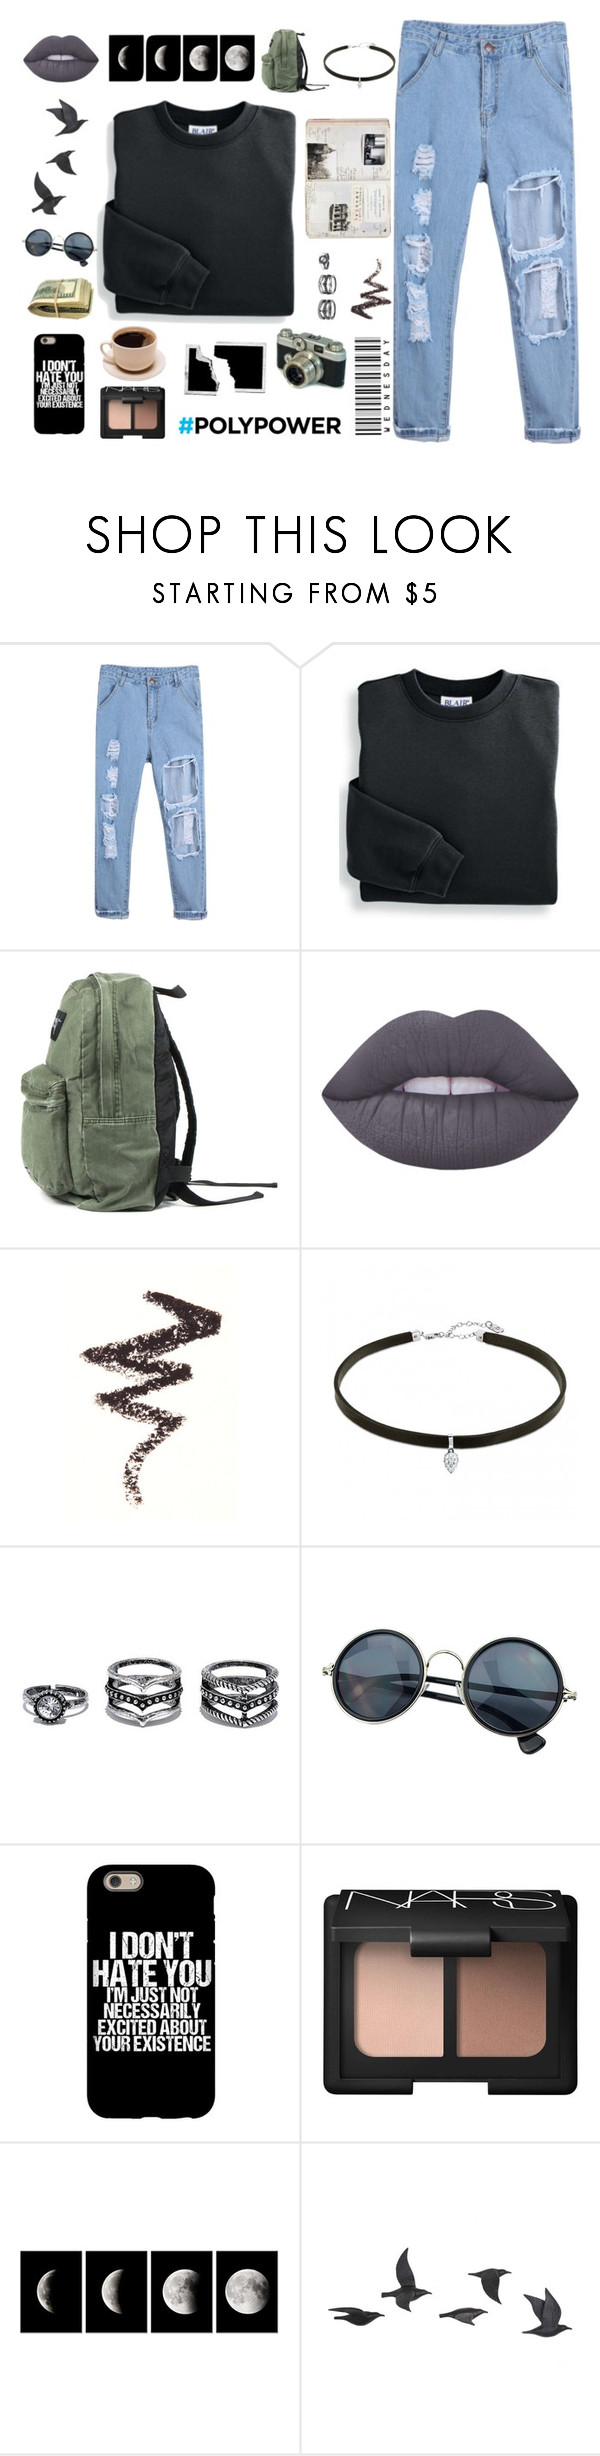 """""""Untitled #92"""" by flowerpower-795 ❤ liked on Polyvore featuring Blair, Lime Crime, NYX, LULUS, NARS Cosmetics, WALL and Jayson Home"""